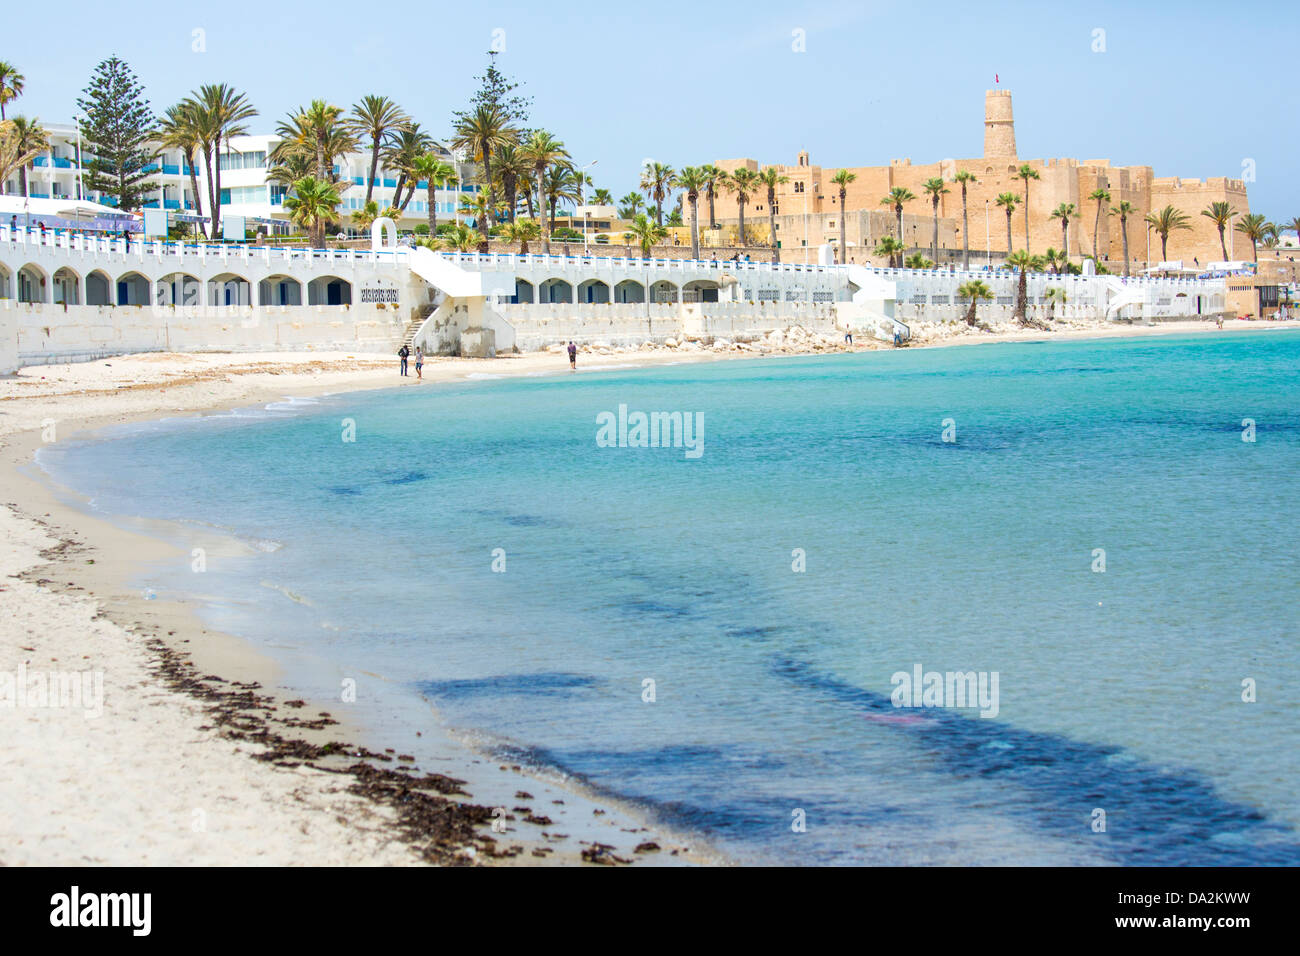 Sousse Ribat, Sousse, TunisiaStock Photo